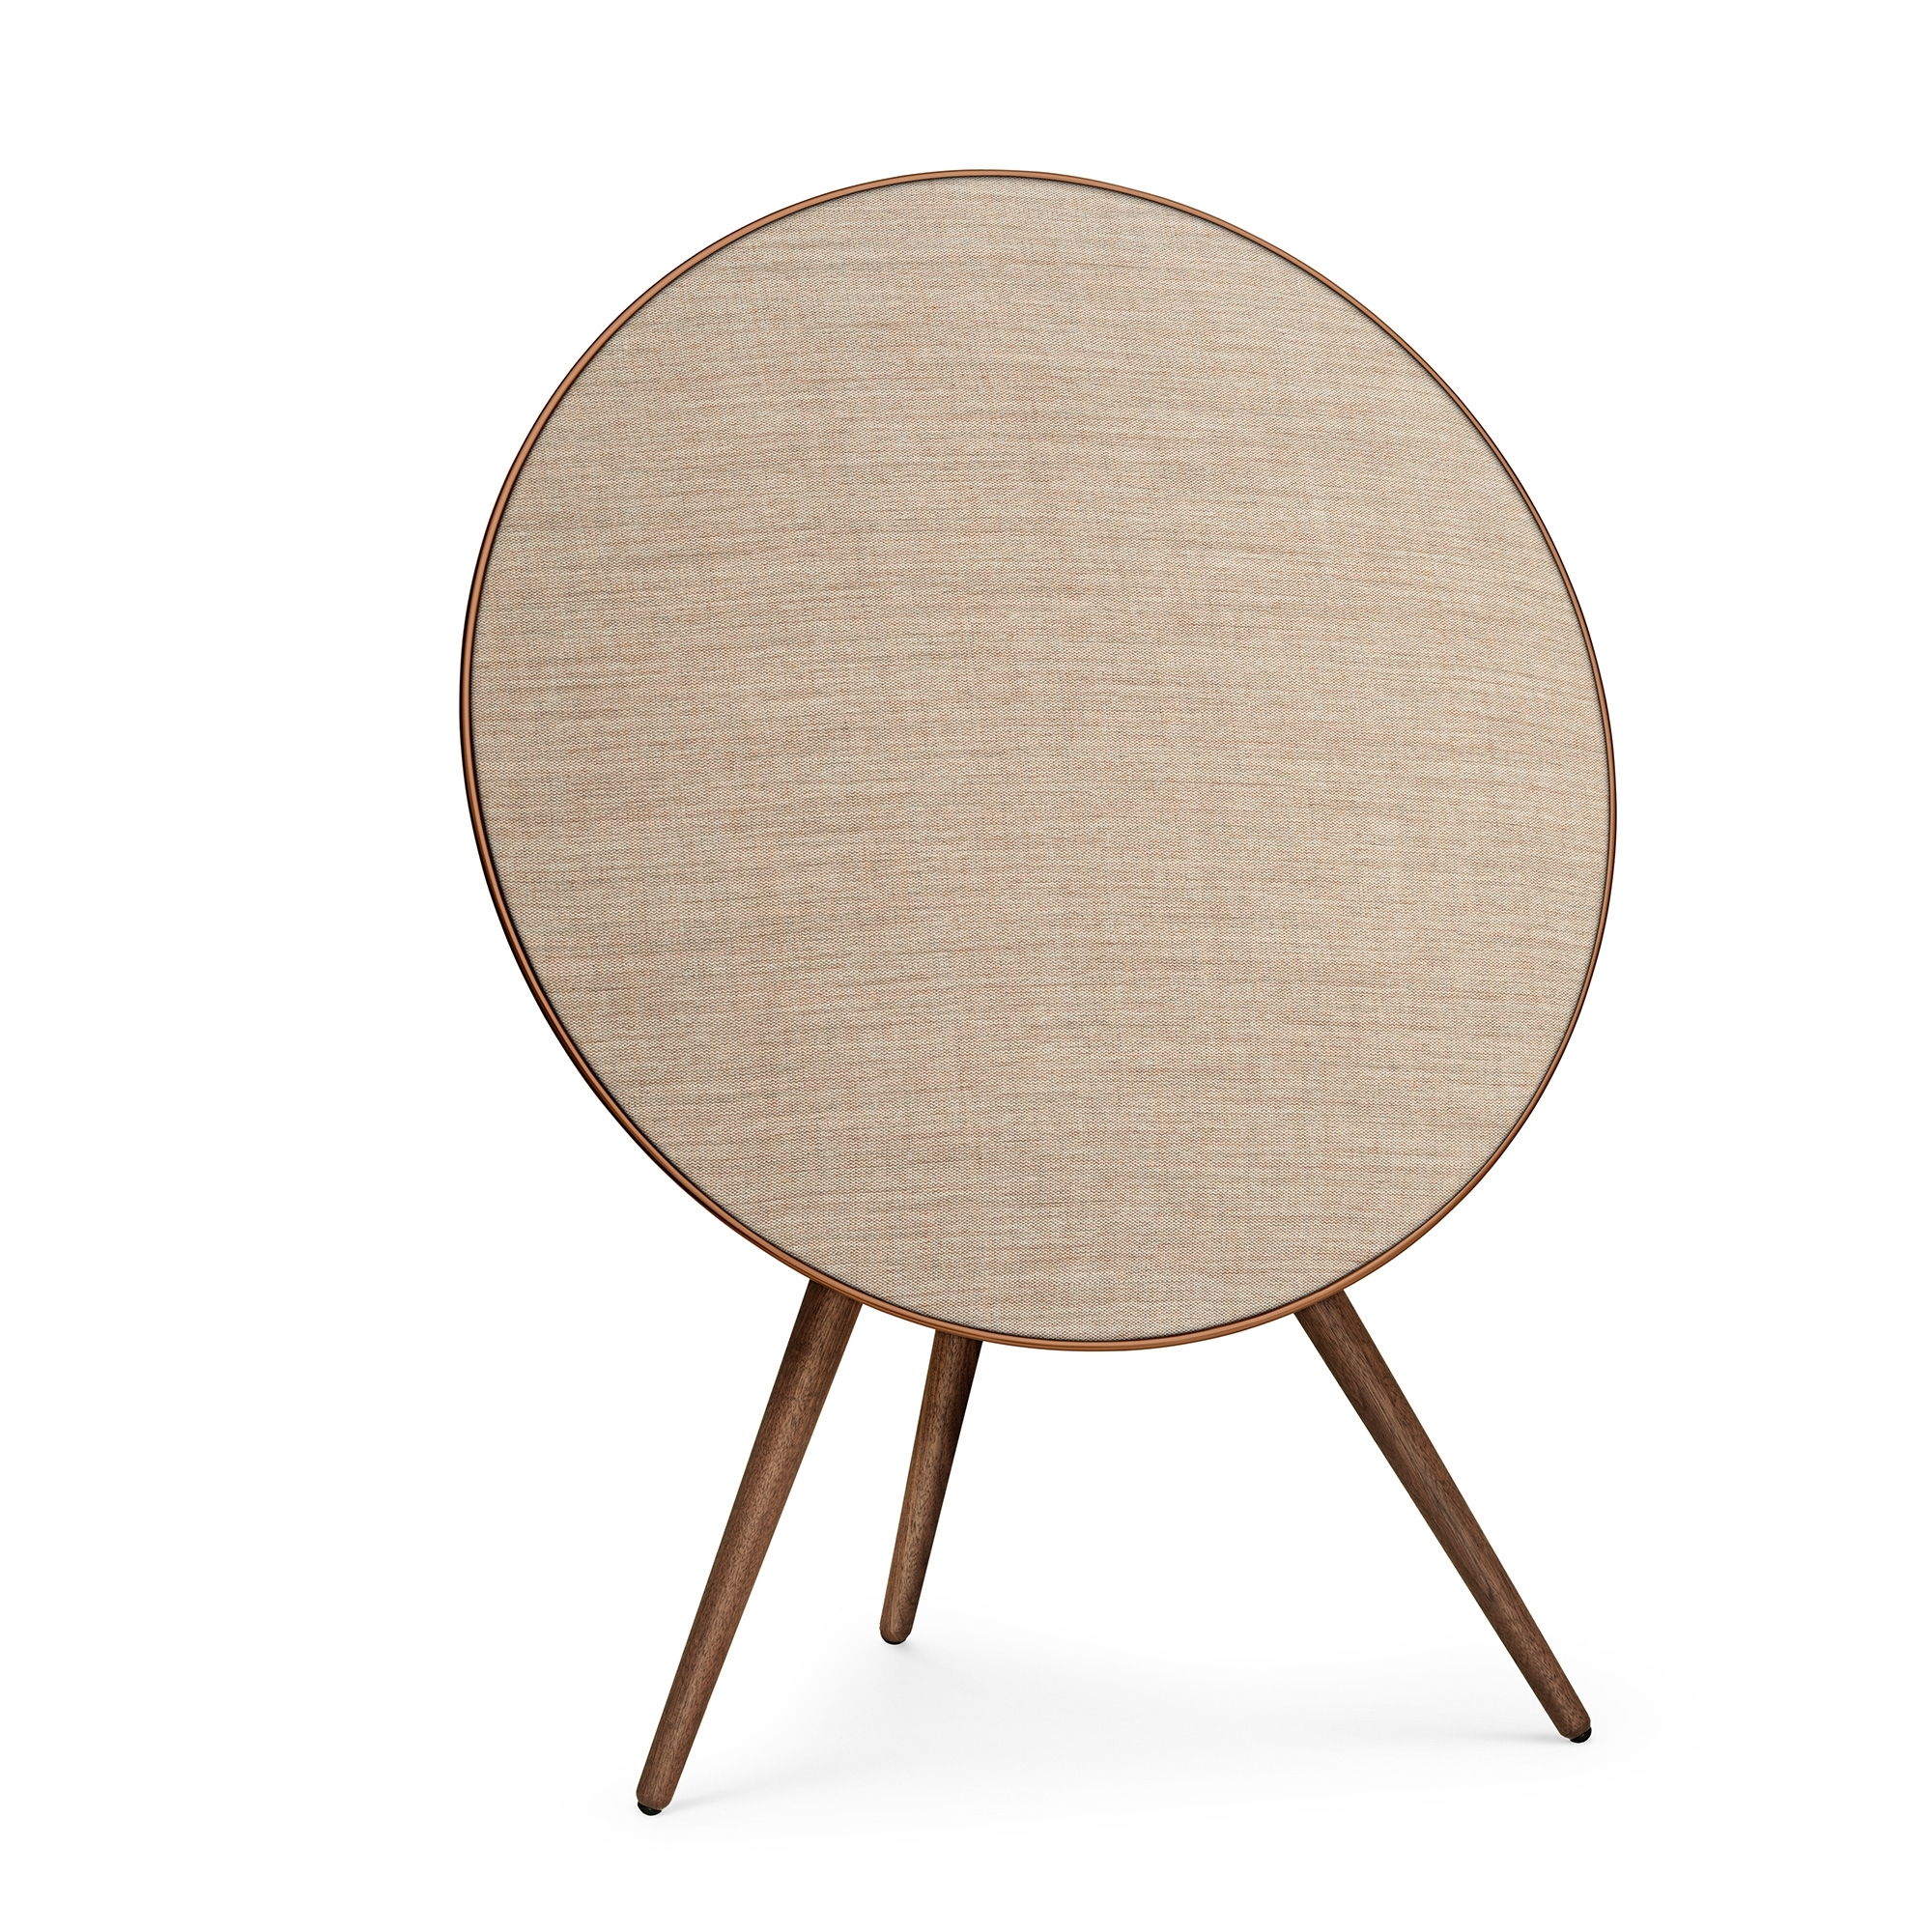 Image of Beoplay A9 - Bronze Tone